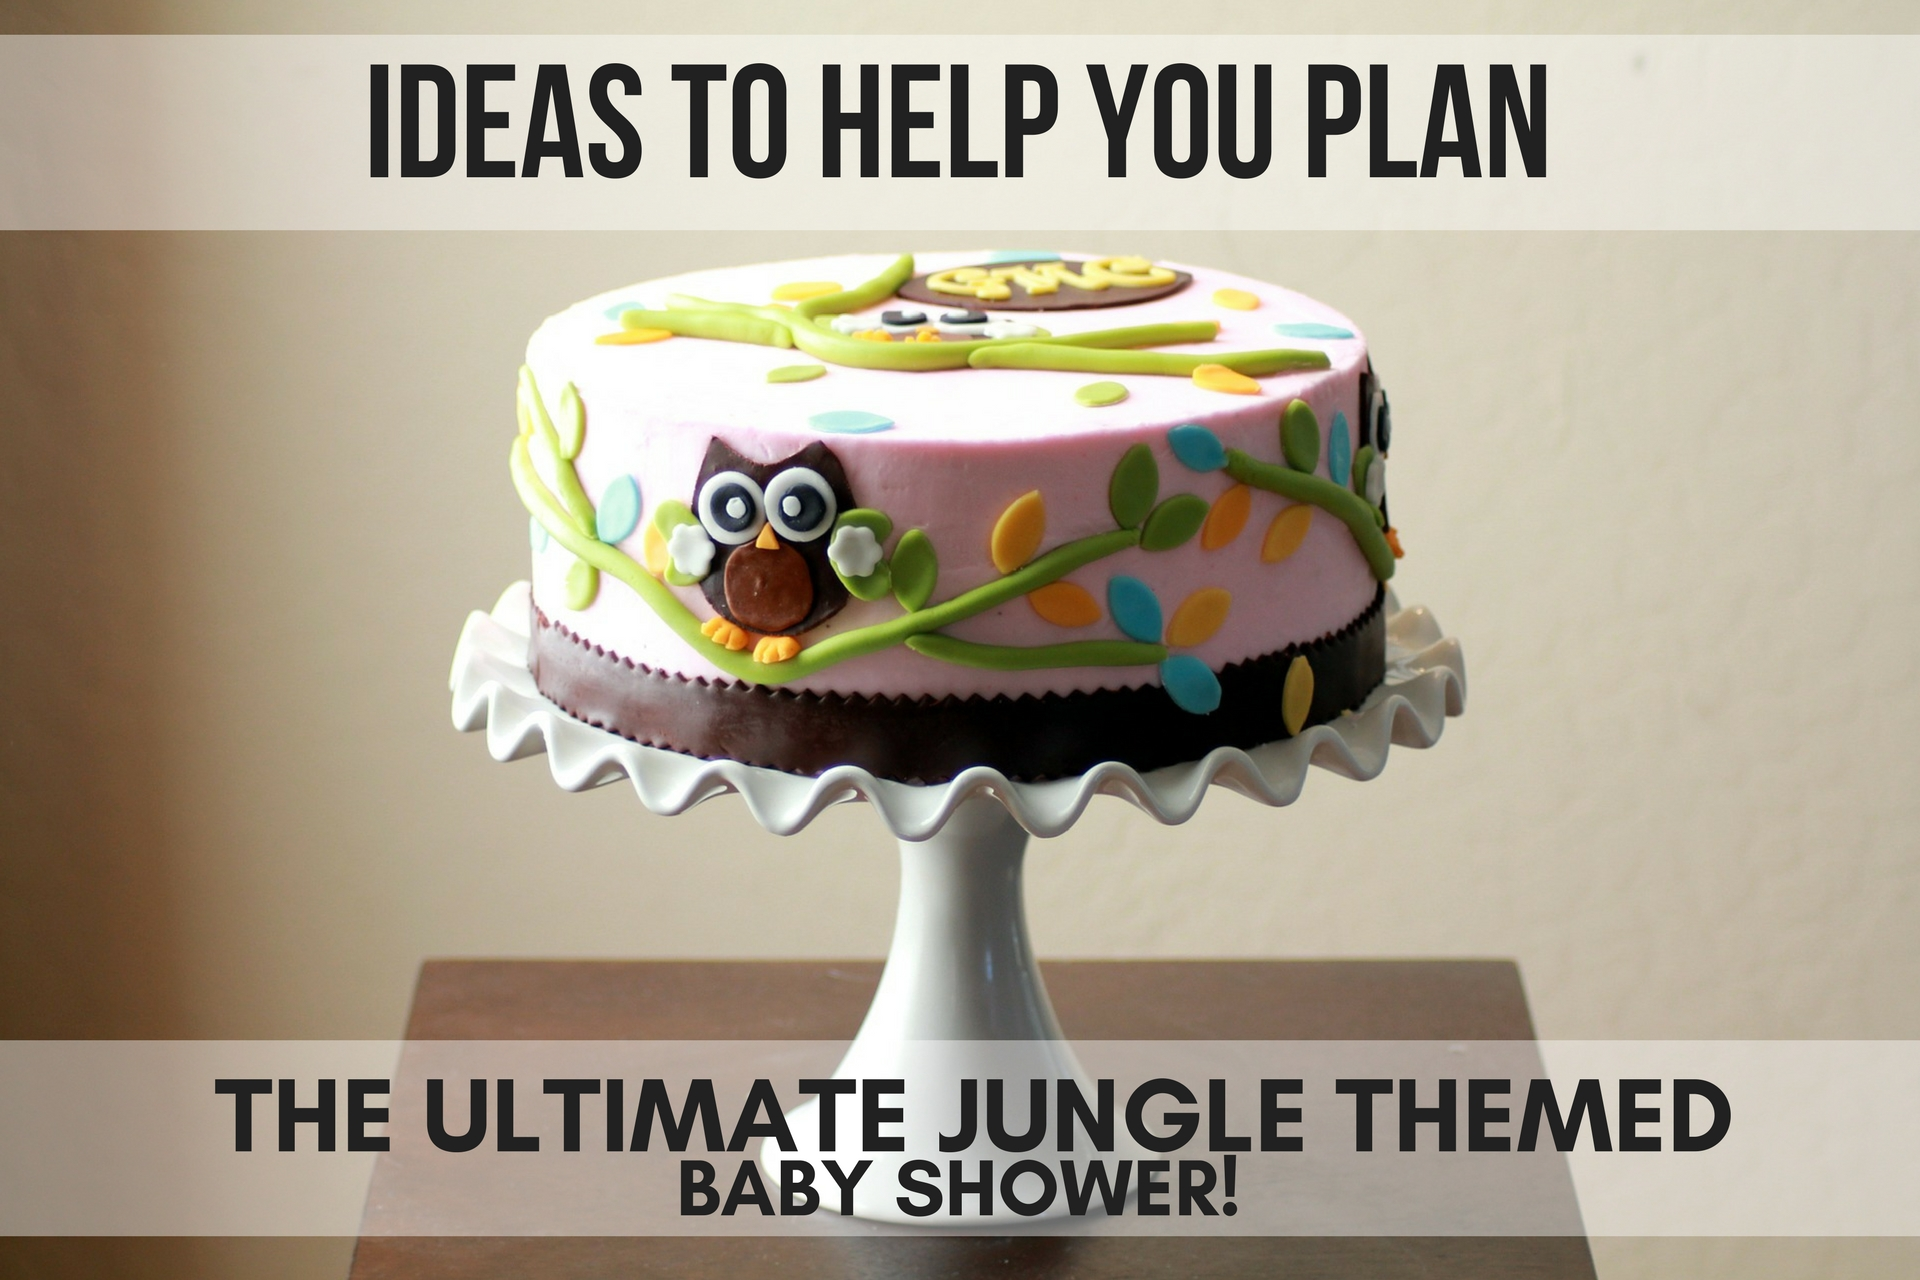 IDEAS TO HELP YOU PLAN THE ULTIMATE JUNGLE THEMED BABY SHOWER! (1)